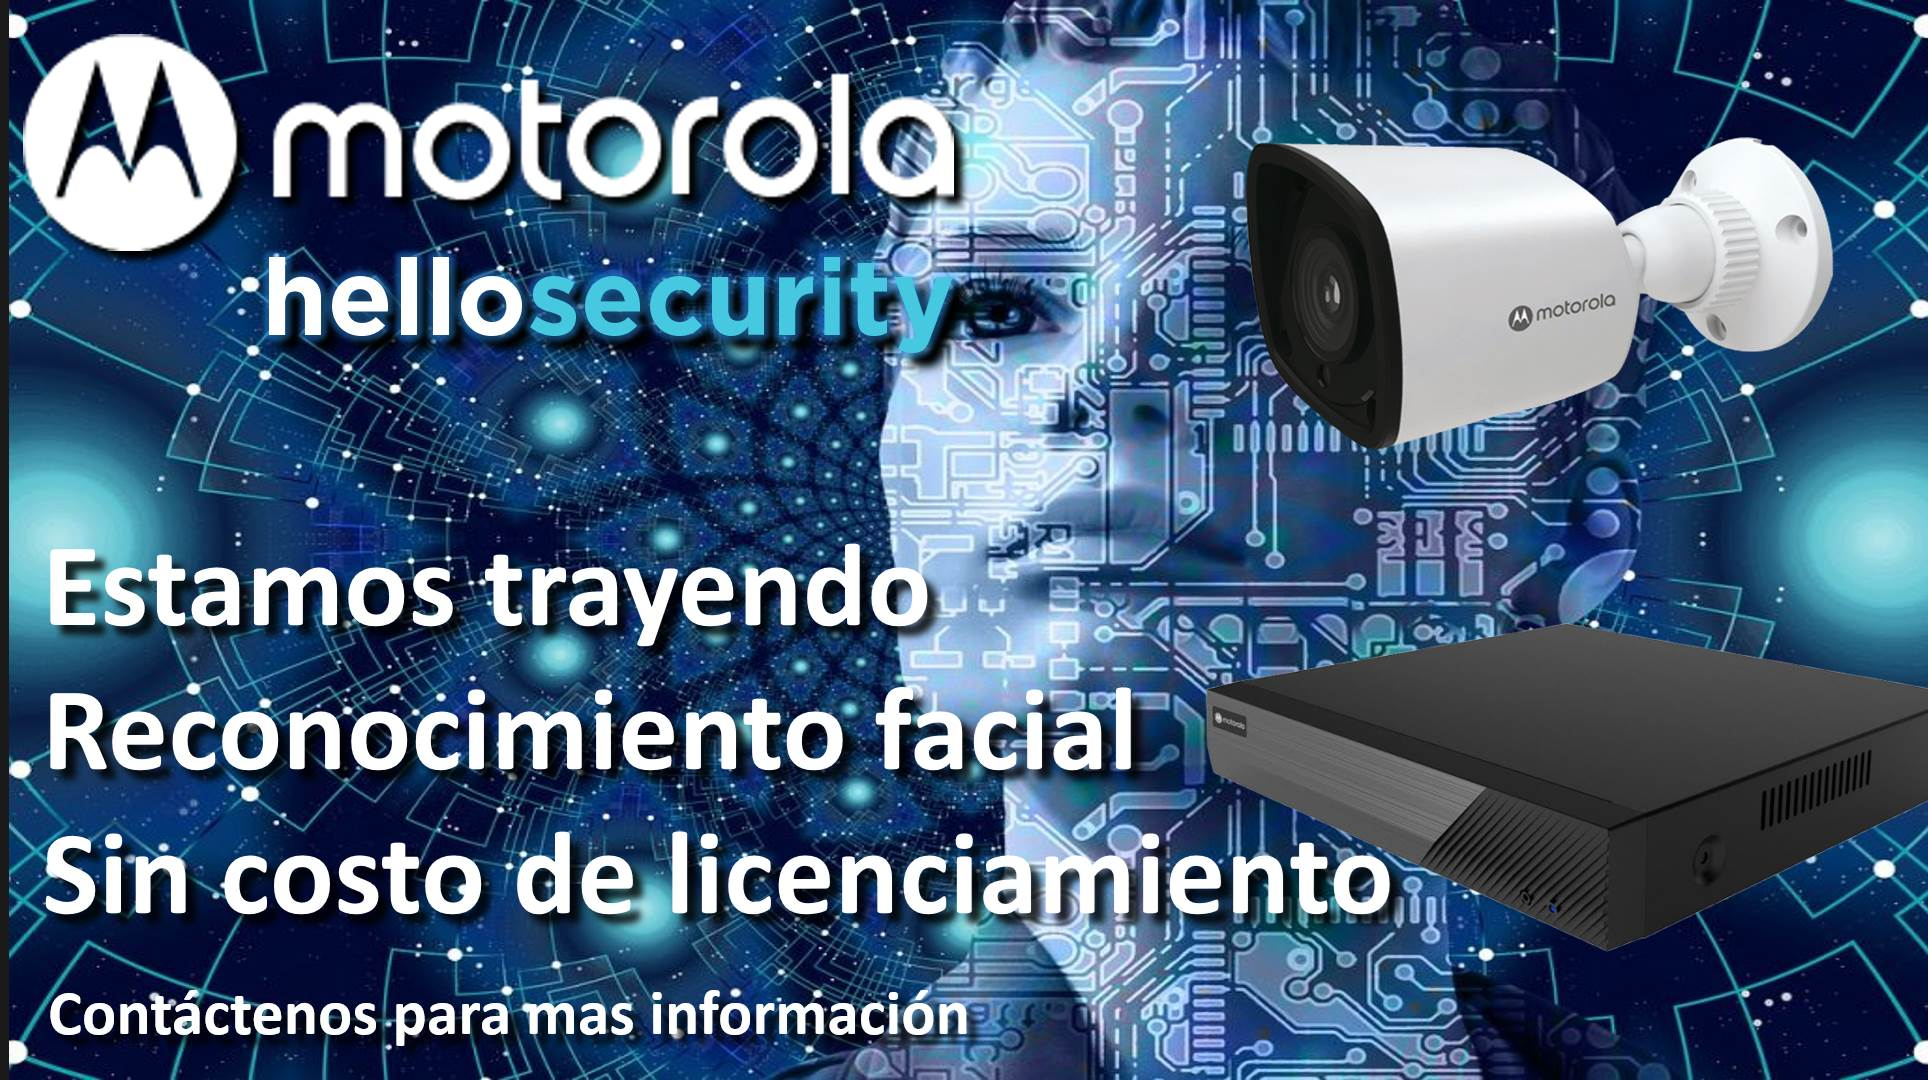 Motorola-Video Vigilancia